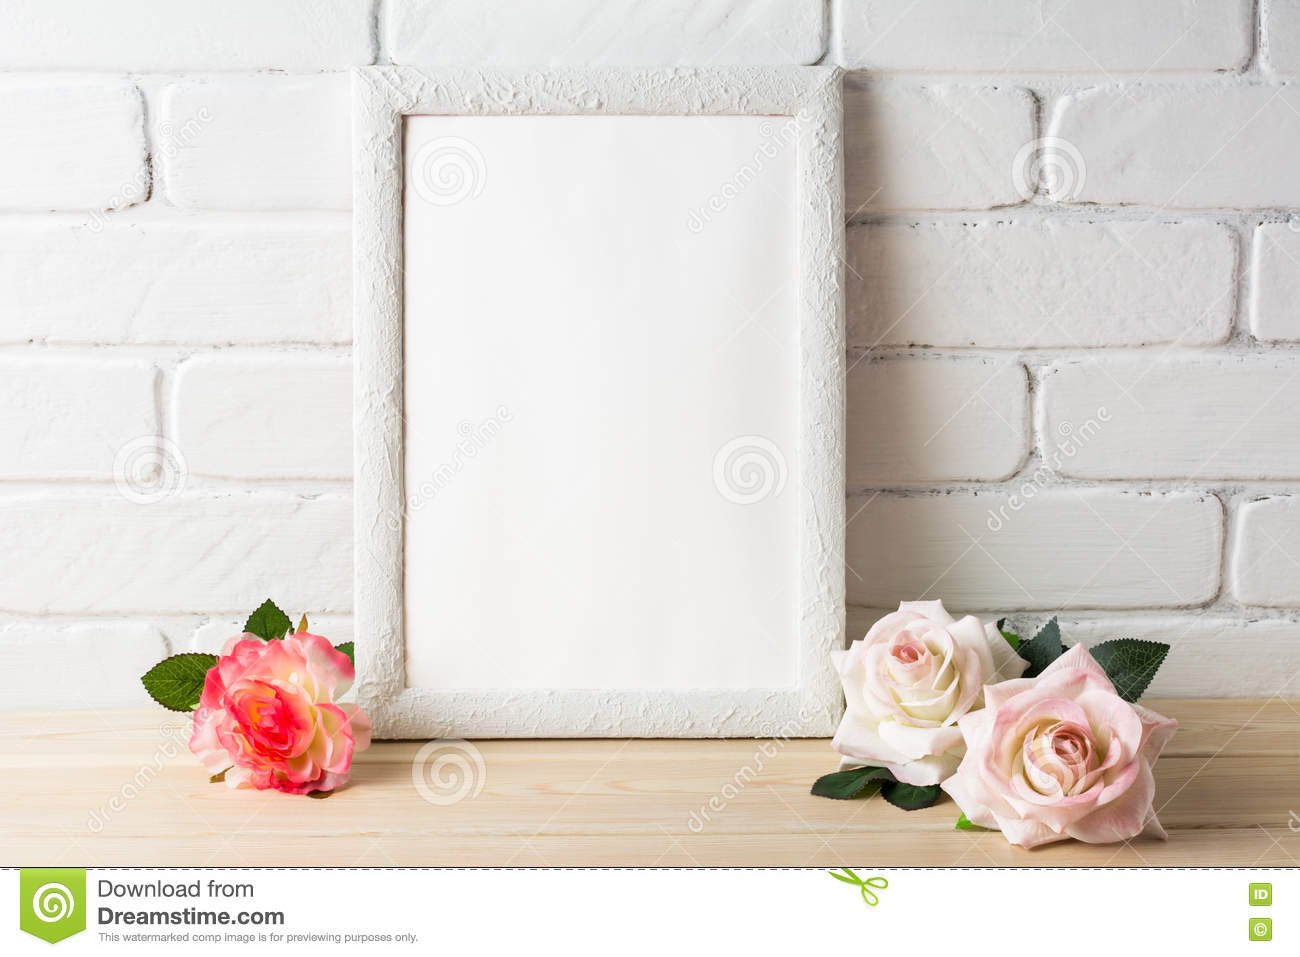 e1101f99efe9 Romantic Style White Frame Mockup With Roses Stock Photo - Image of ...